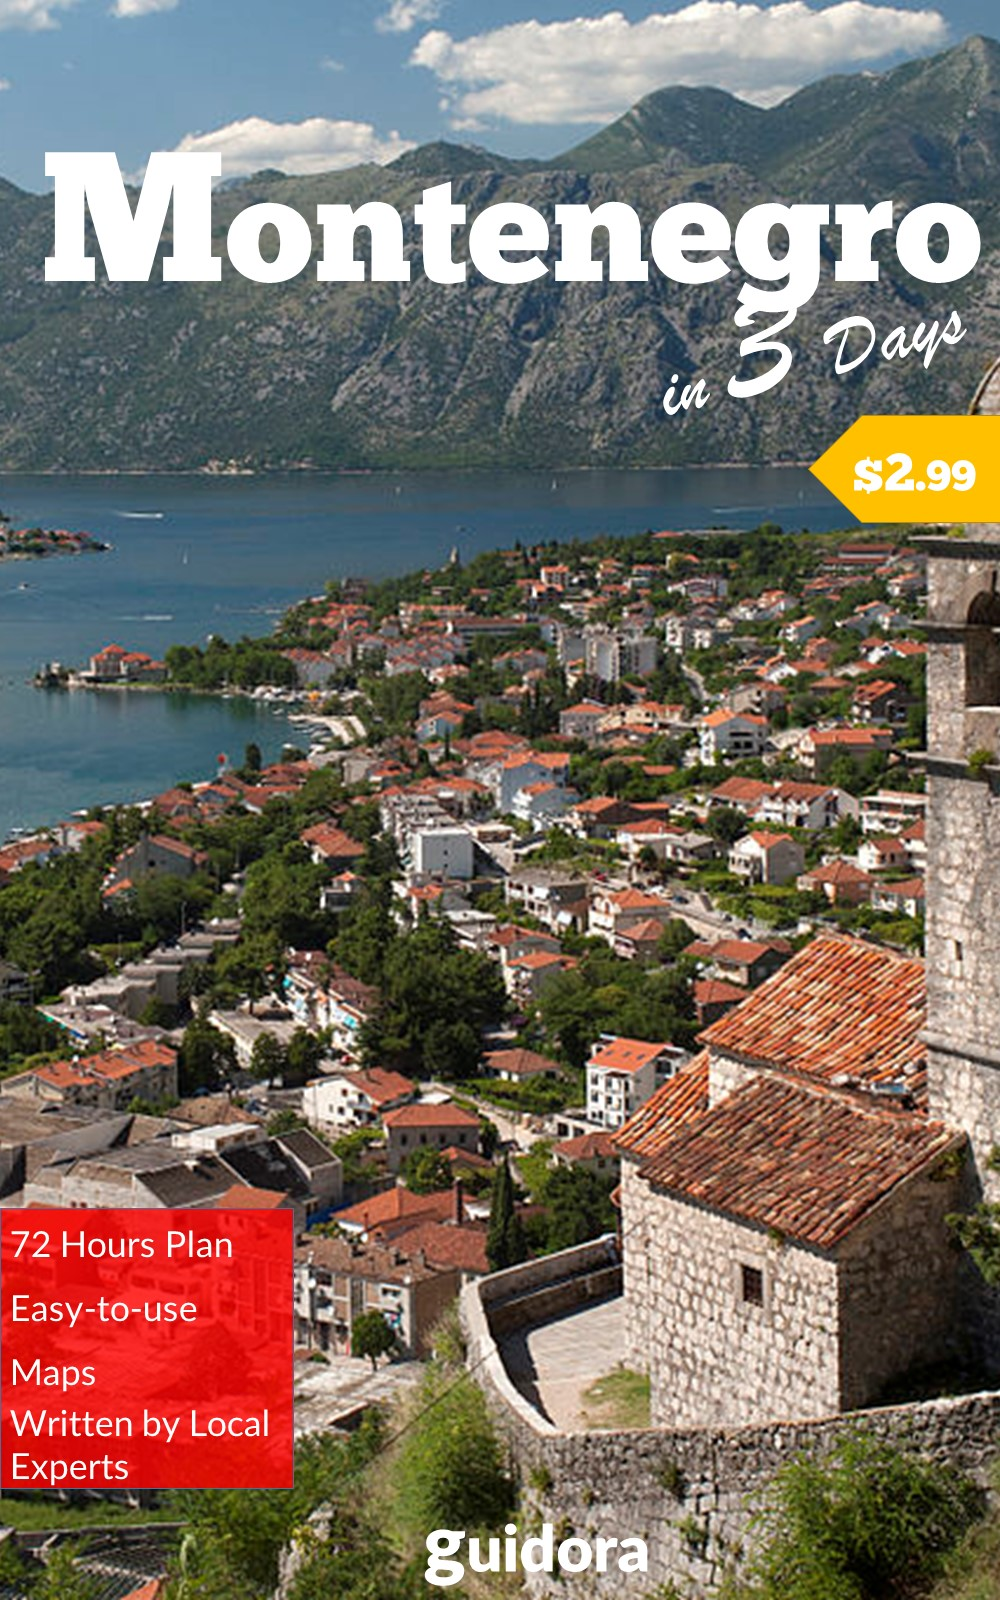 Montenegro in 3 Days, Travel Guide 2017